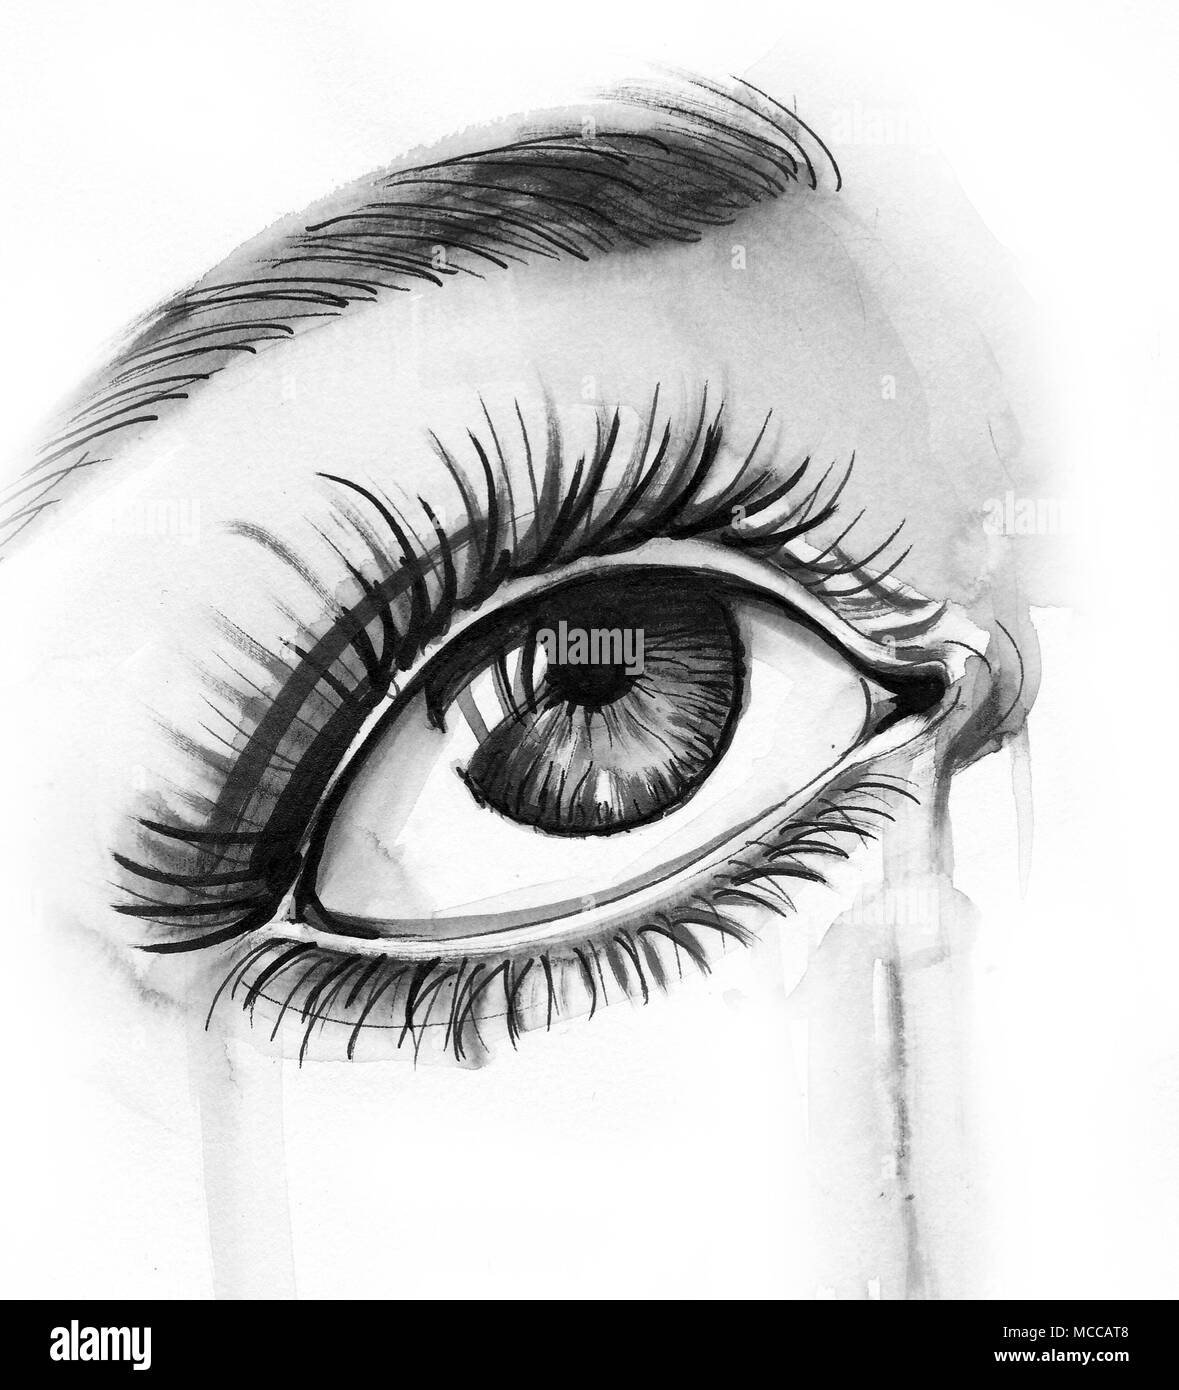 Crying eye ink black and white drawing stock photo